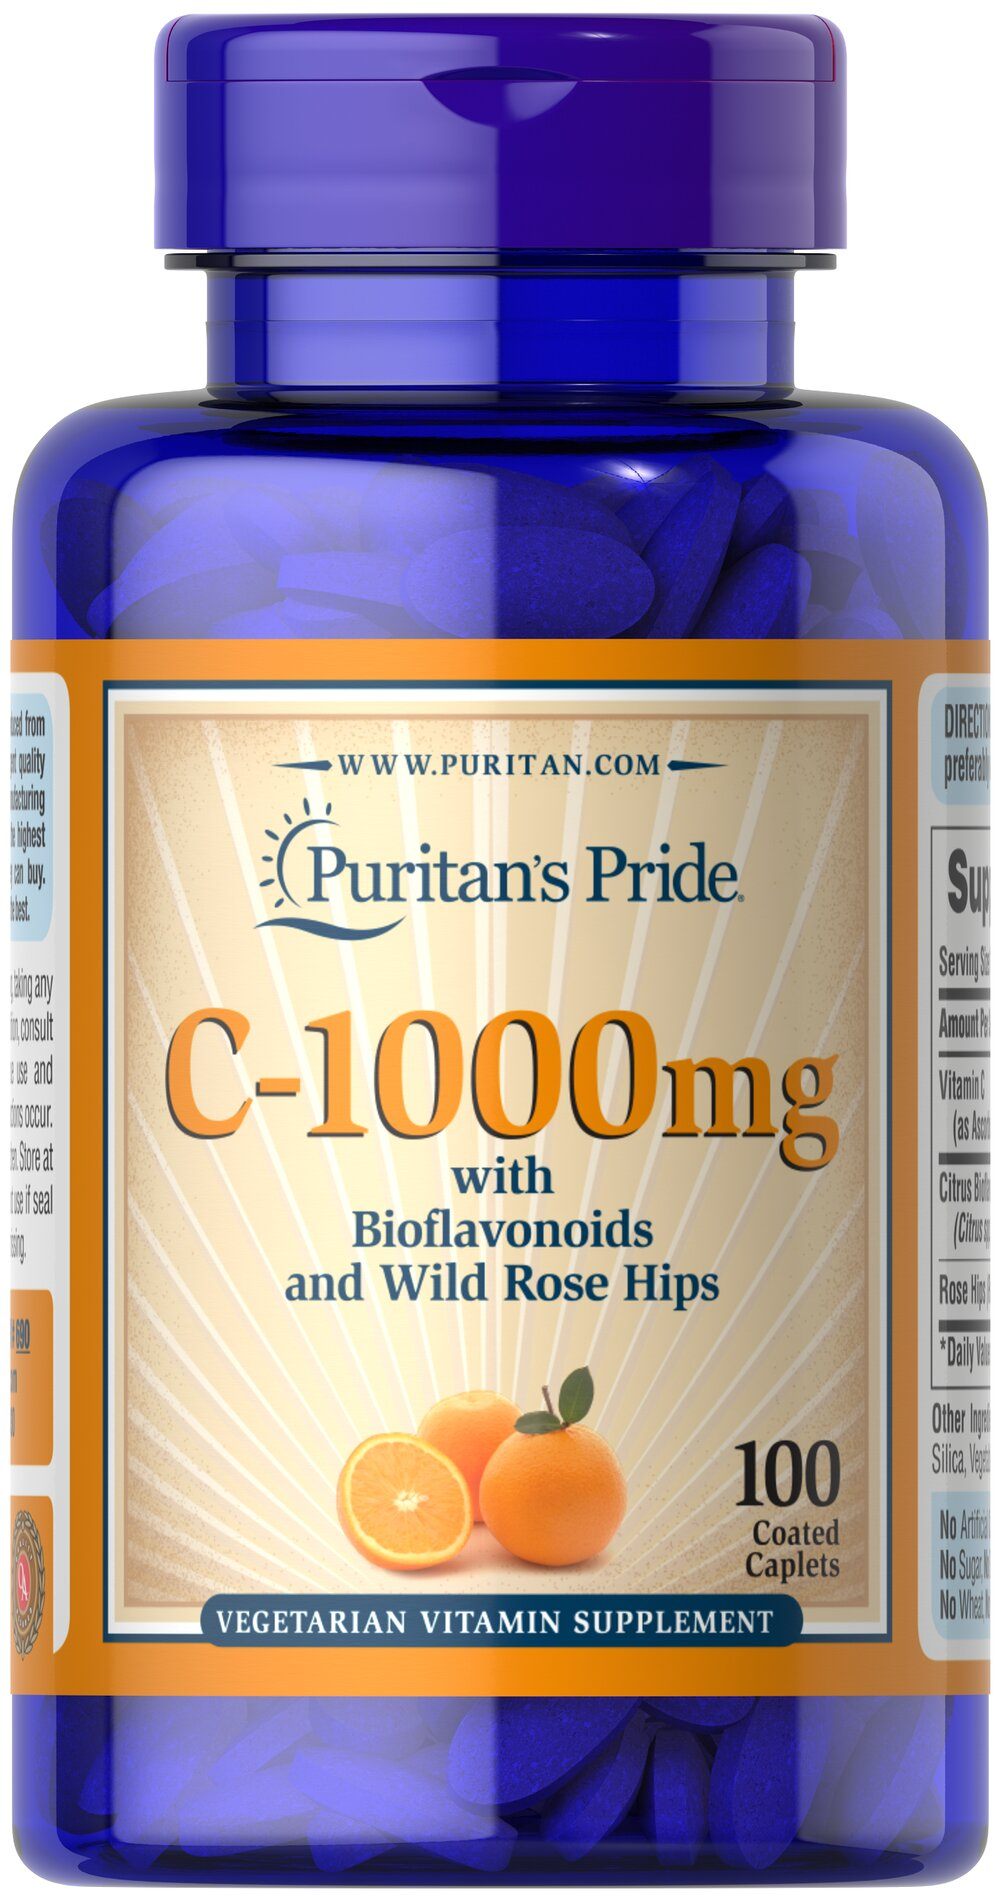 Vitamin C-1000 mg with Bioflavonoids & Rose Hips <p>Vitamin C is essential to many functions in the body and is one of the leading vitamins for immune support and helps fight cell-damaging free radicals.** Our product also includes Rose Hips, which help the body absorb and utilize Vitamin C.**</p><p>Offers superior antioxidant support.**</p><p>Supports healthy immune function and promotes well-being.**</p> 100 Caplets 1000 mg $10.99